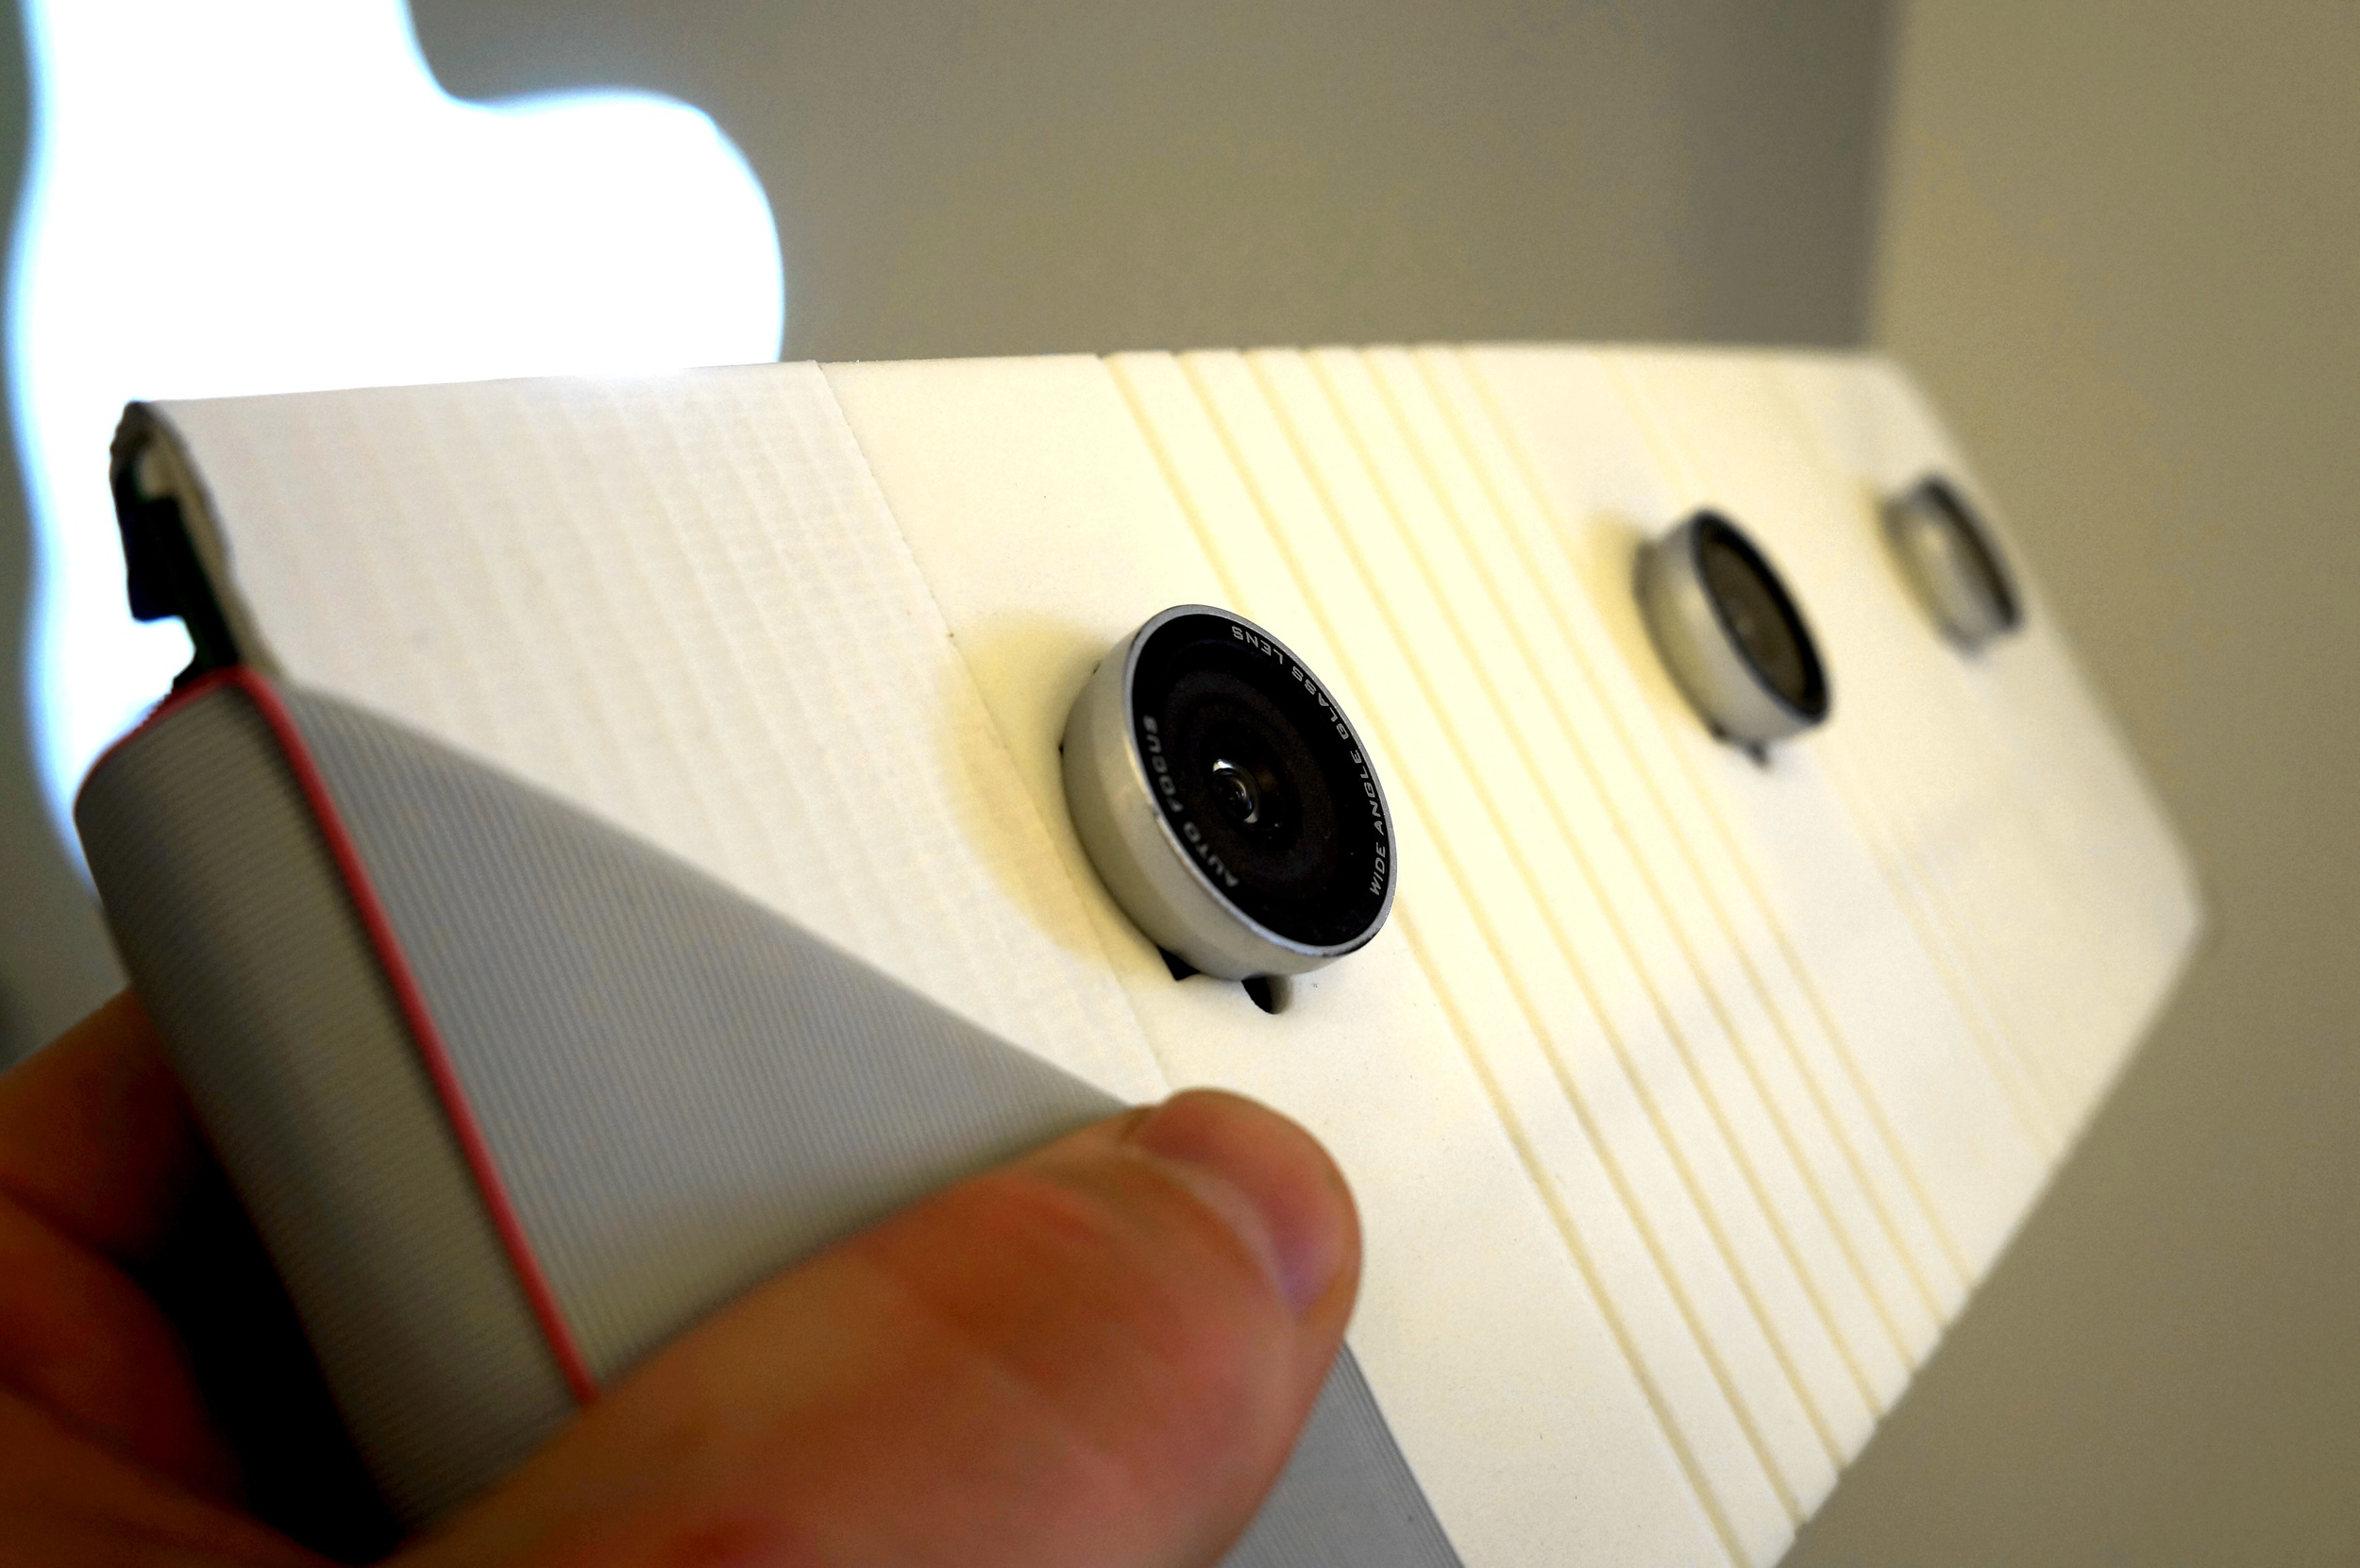 flexcam (2012) the camera is the photograph